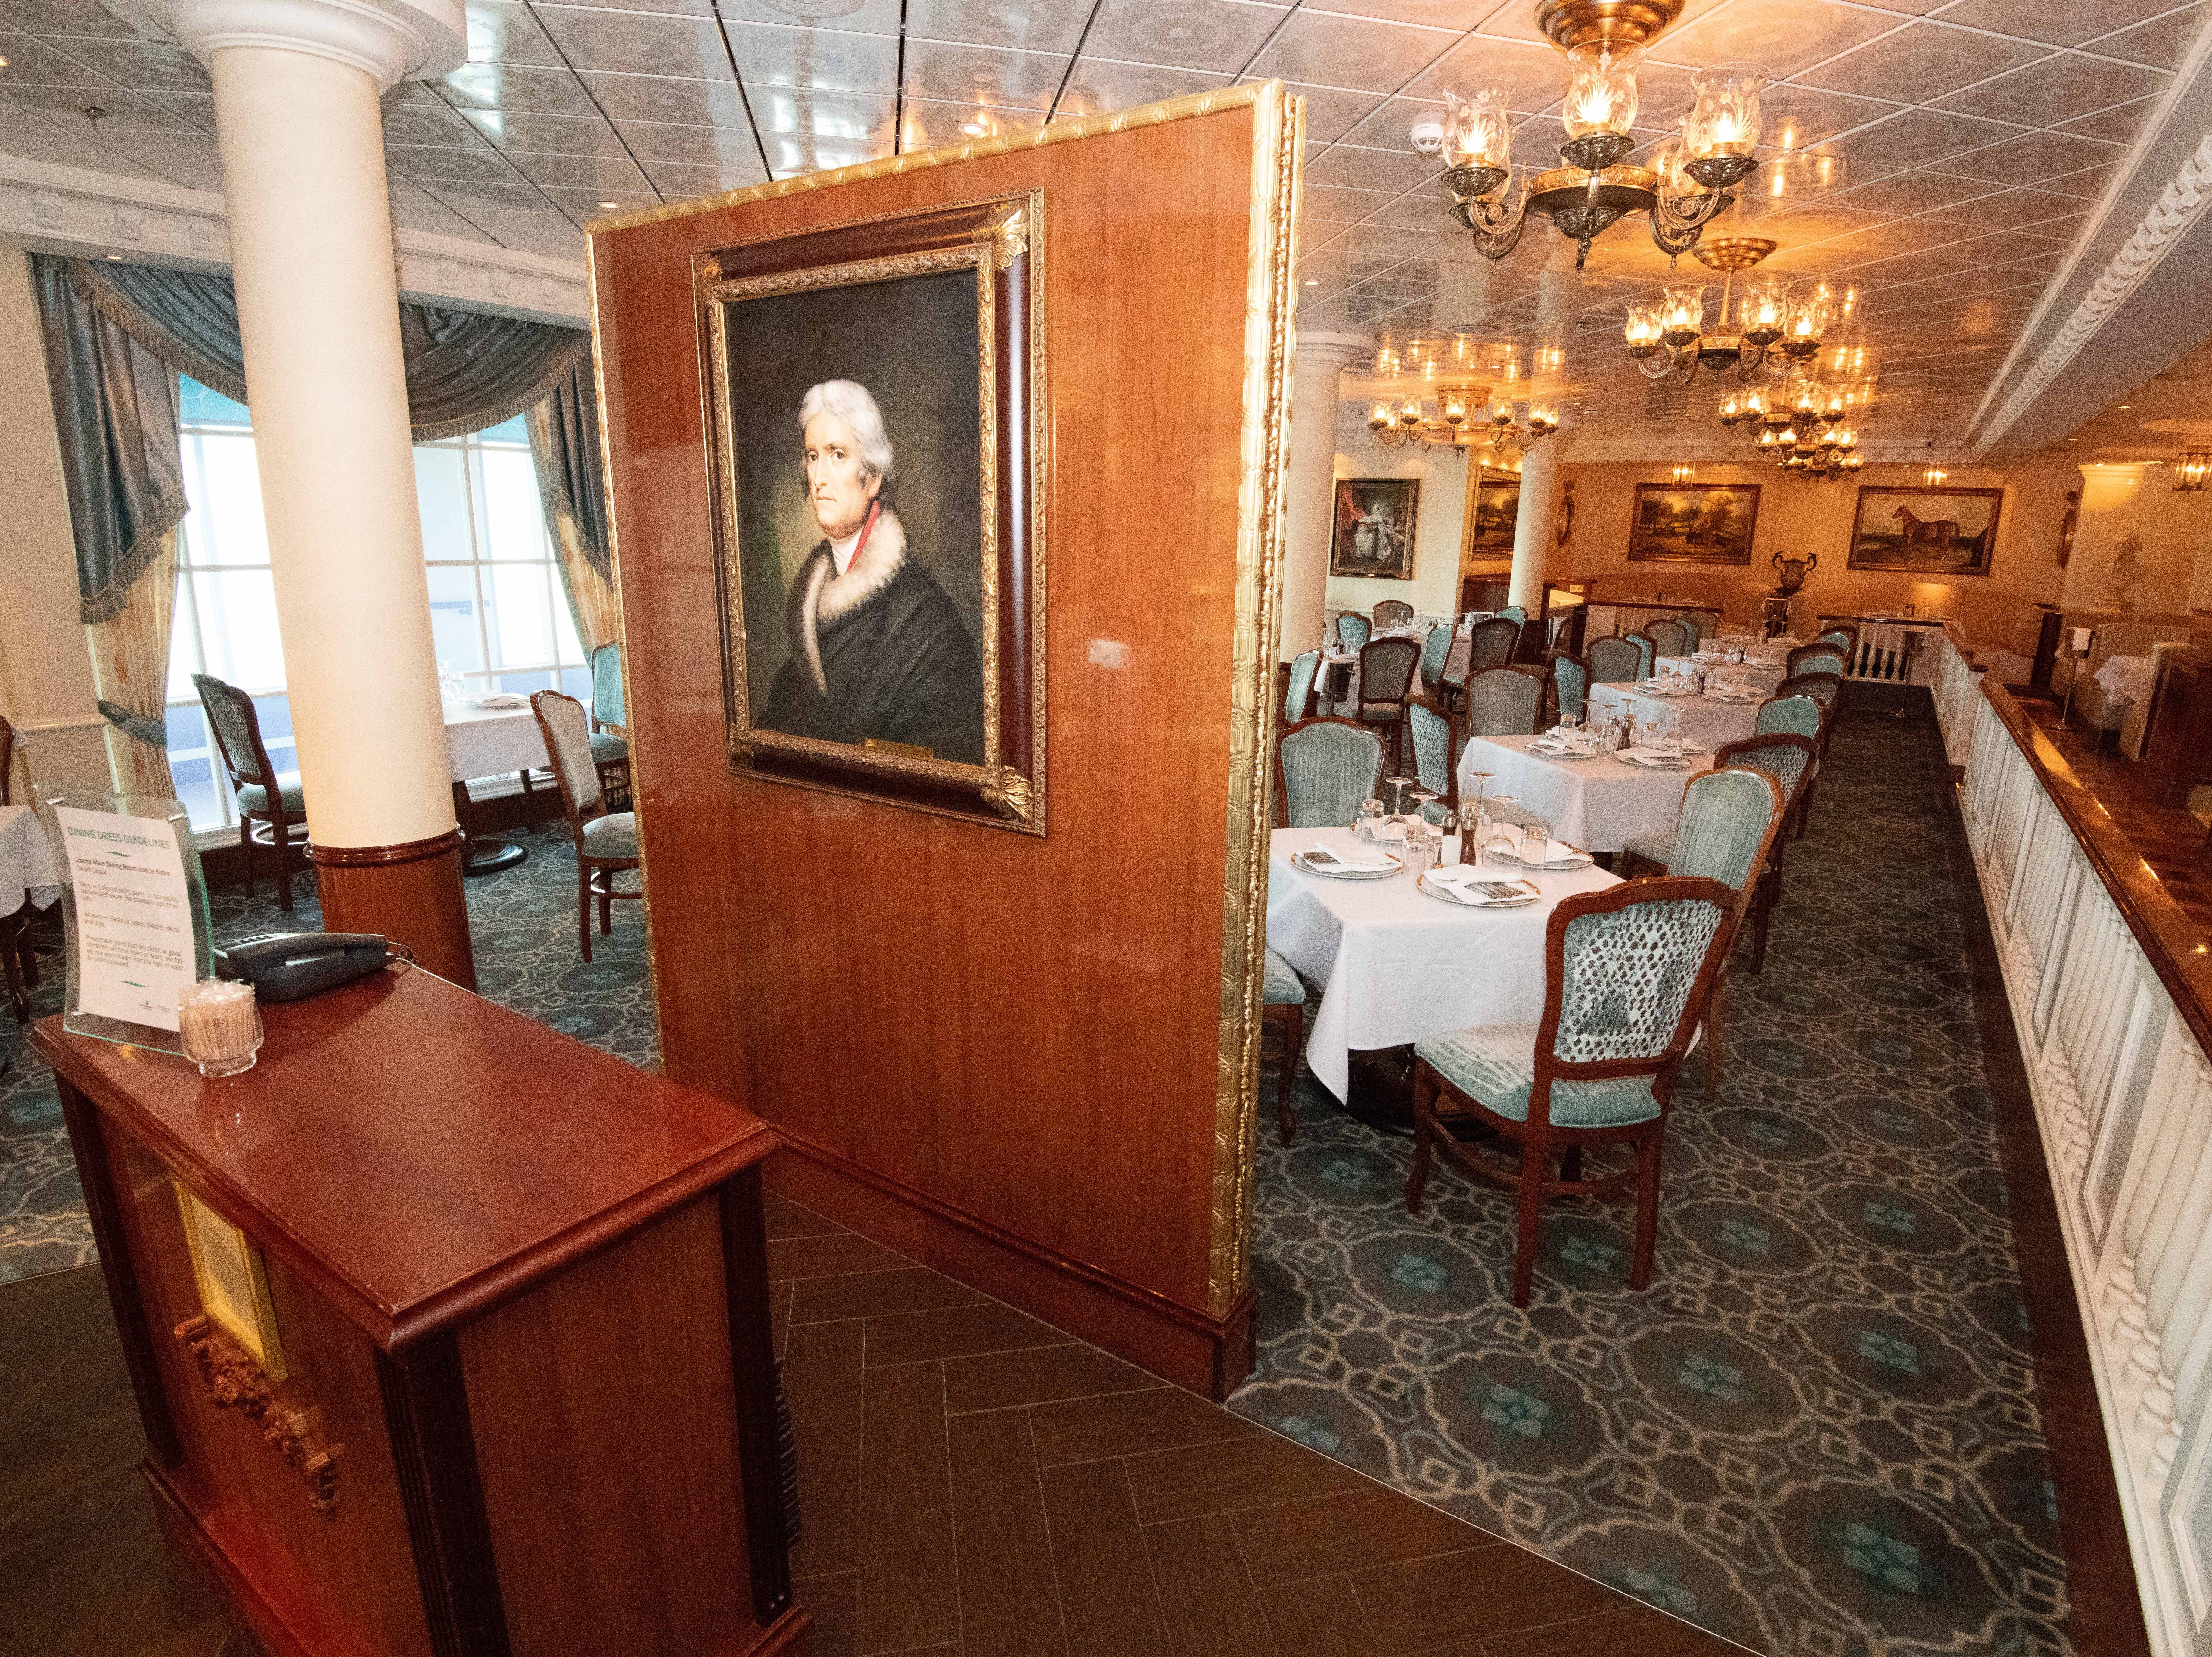 In addition to complimentary restaurants, Pride of America offers six extra-charge eateries as well as an extra-charge ice cream stand. Perhaps the most elegant of the extra-charge eateries is Jefferson's Bistro, which serves French cuisine.